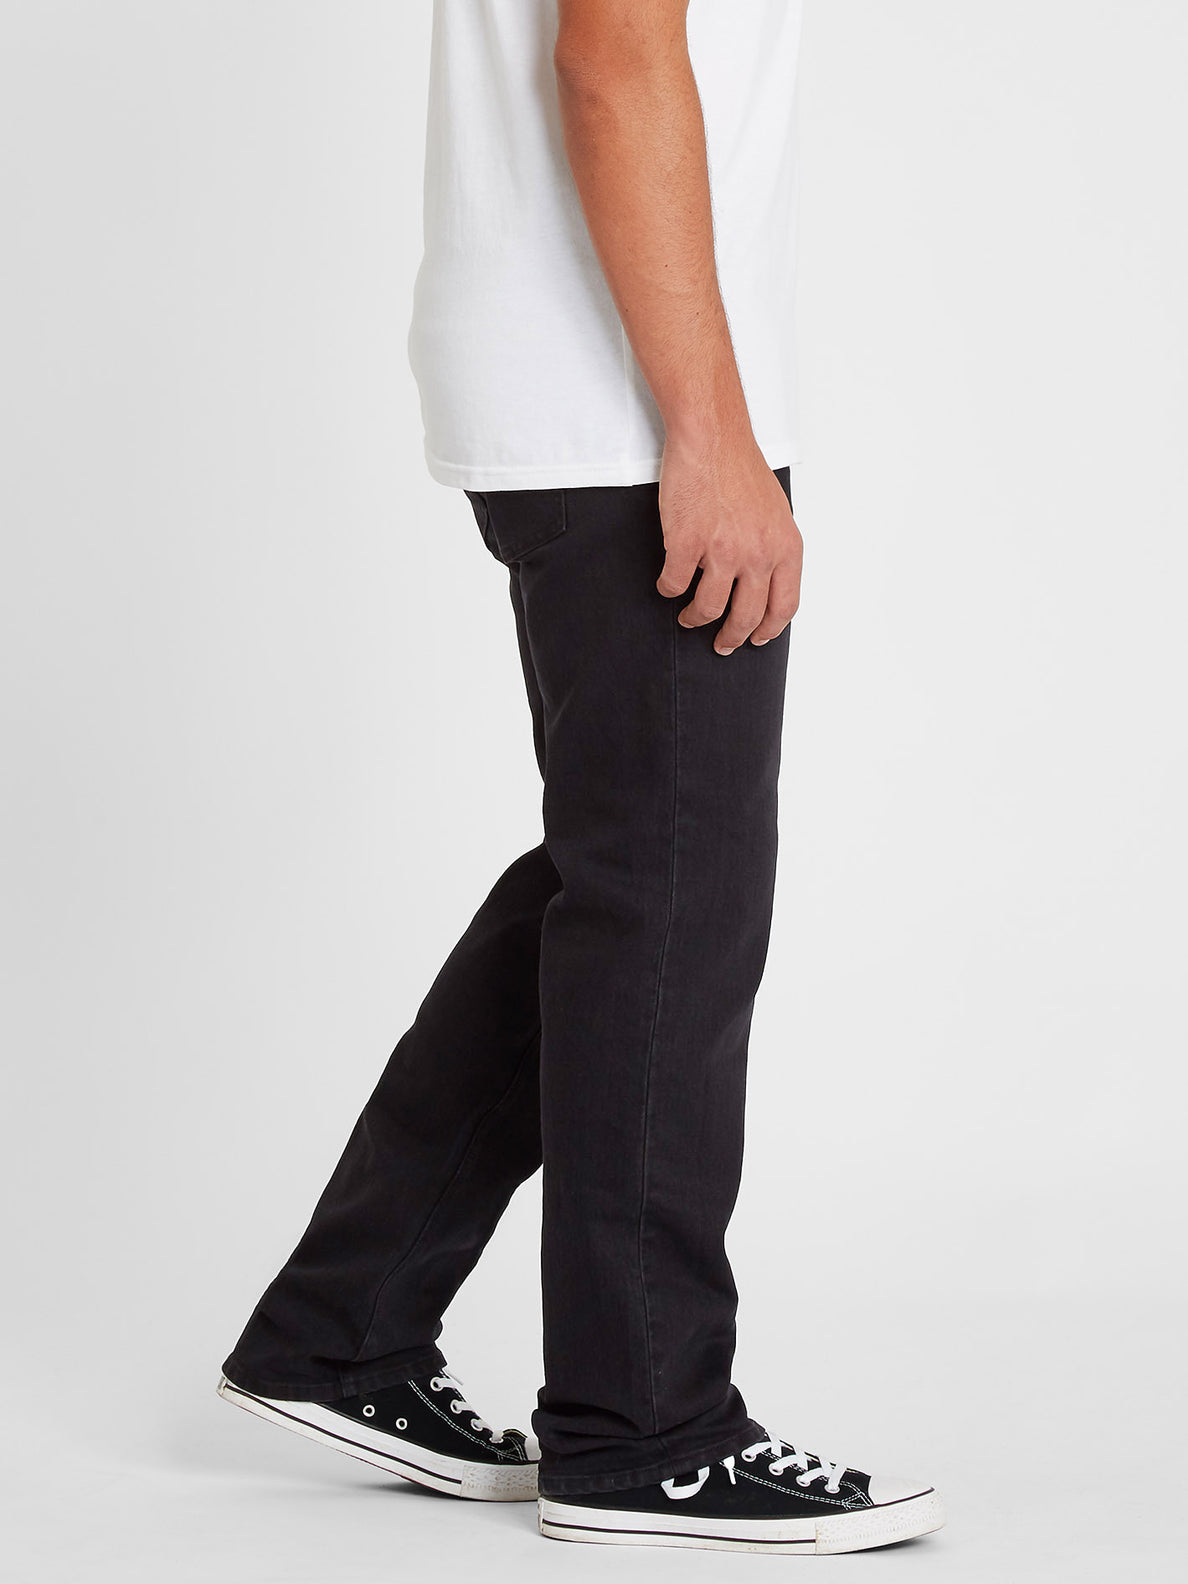 Solver Modern Fit Jeans - Black Out (A1931503_BKO) [3]